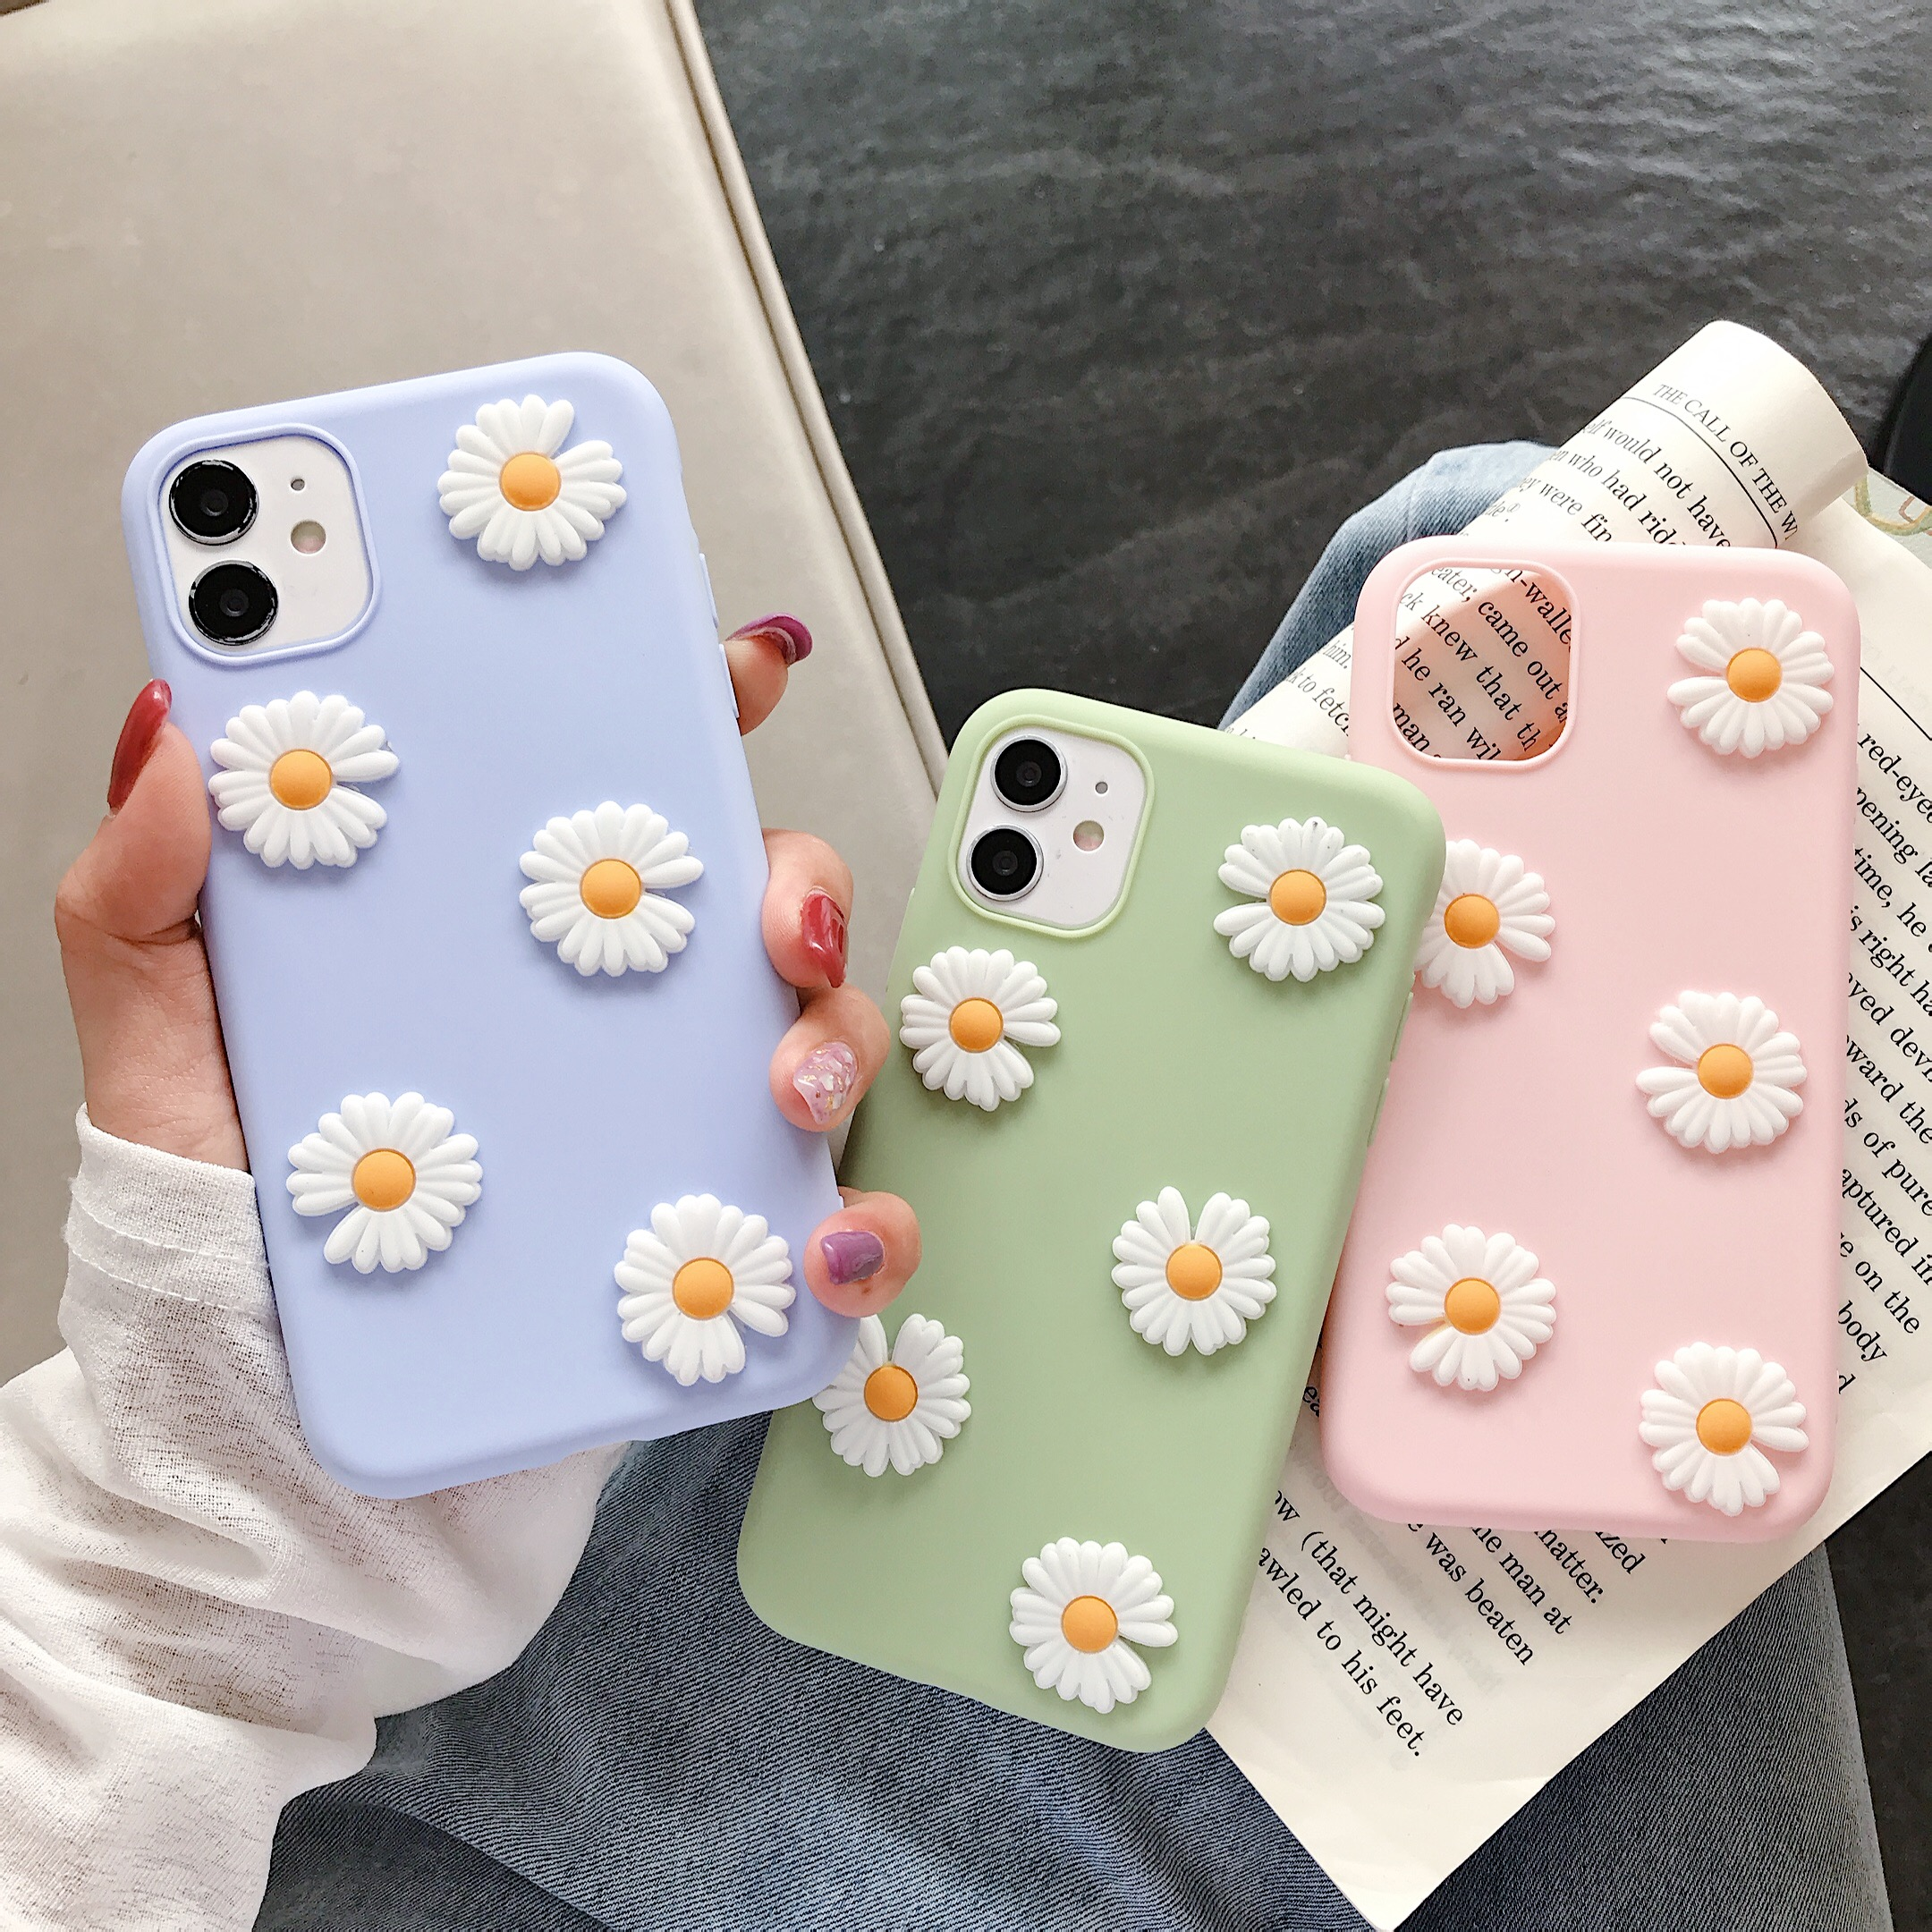 ins Cute 3D Daisy Silicone Soft Phone Case For Samsung Galaxy S10 S20 S6 S7 S8 S9 S10E edge Lite Plus + Note 8 9 5 10 Pro Ultra image